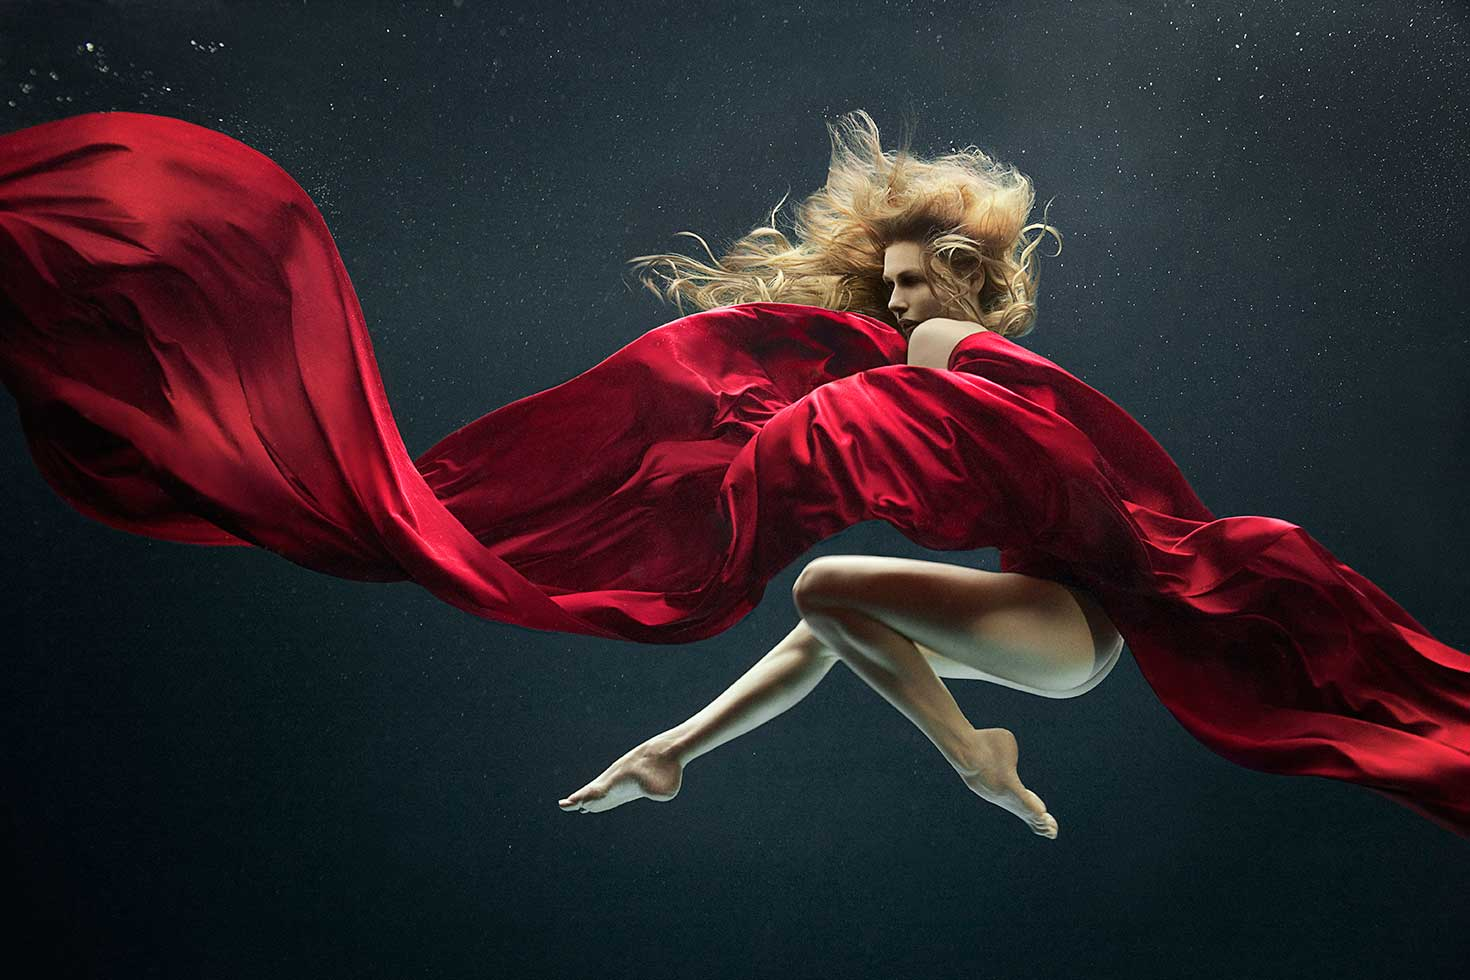 Nude blond mermaid styled model dances within a black water space with flowing red silk fabric. Copyright 2016 - Zena Holloway